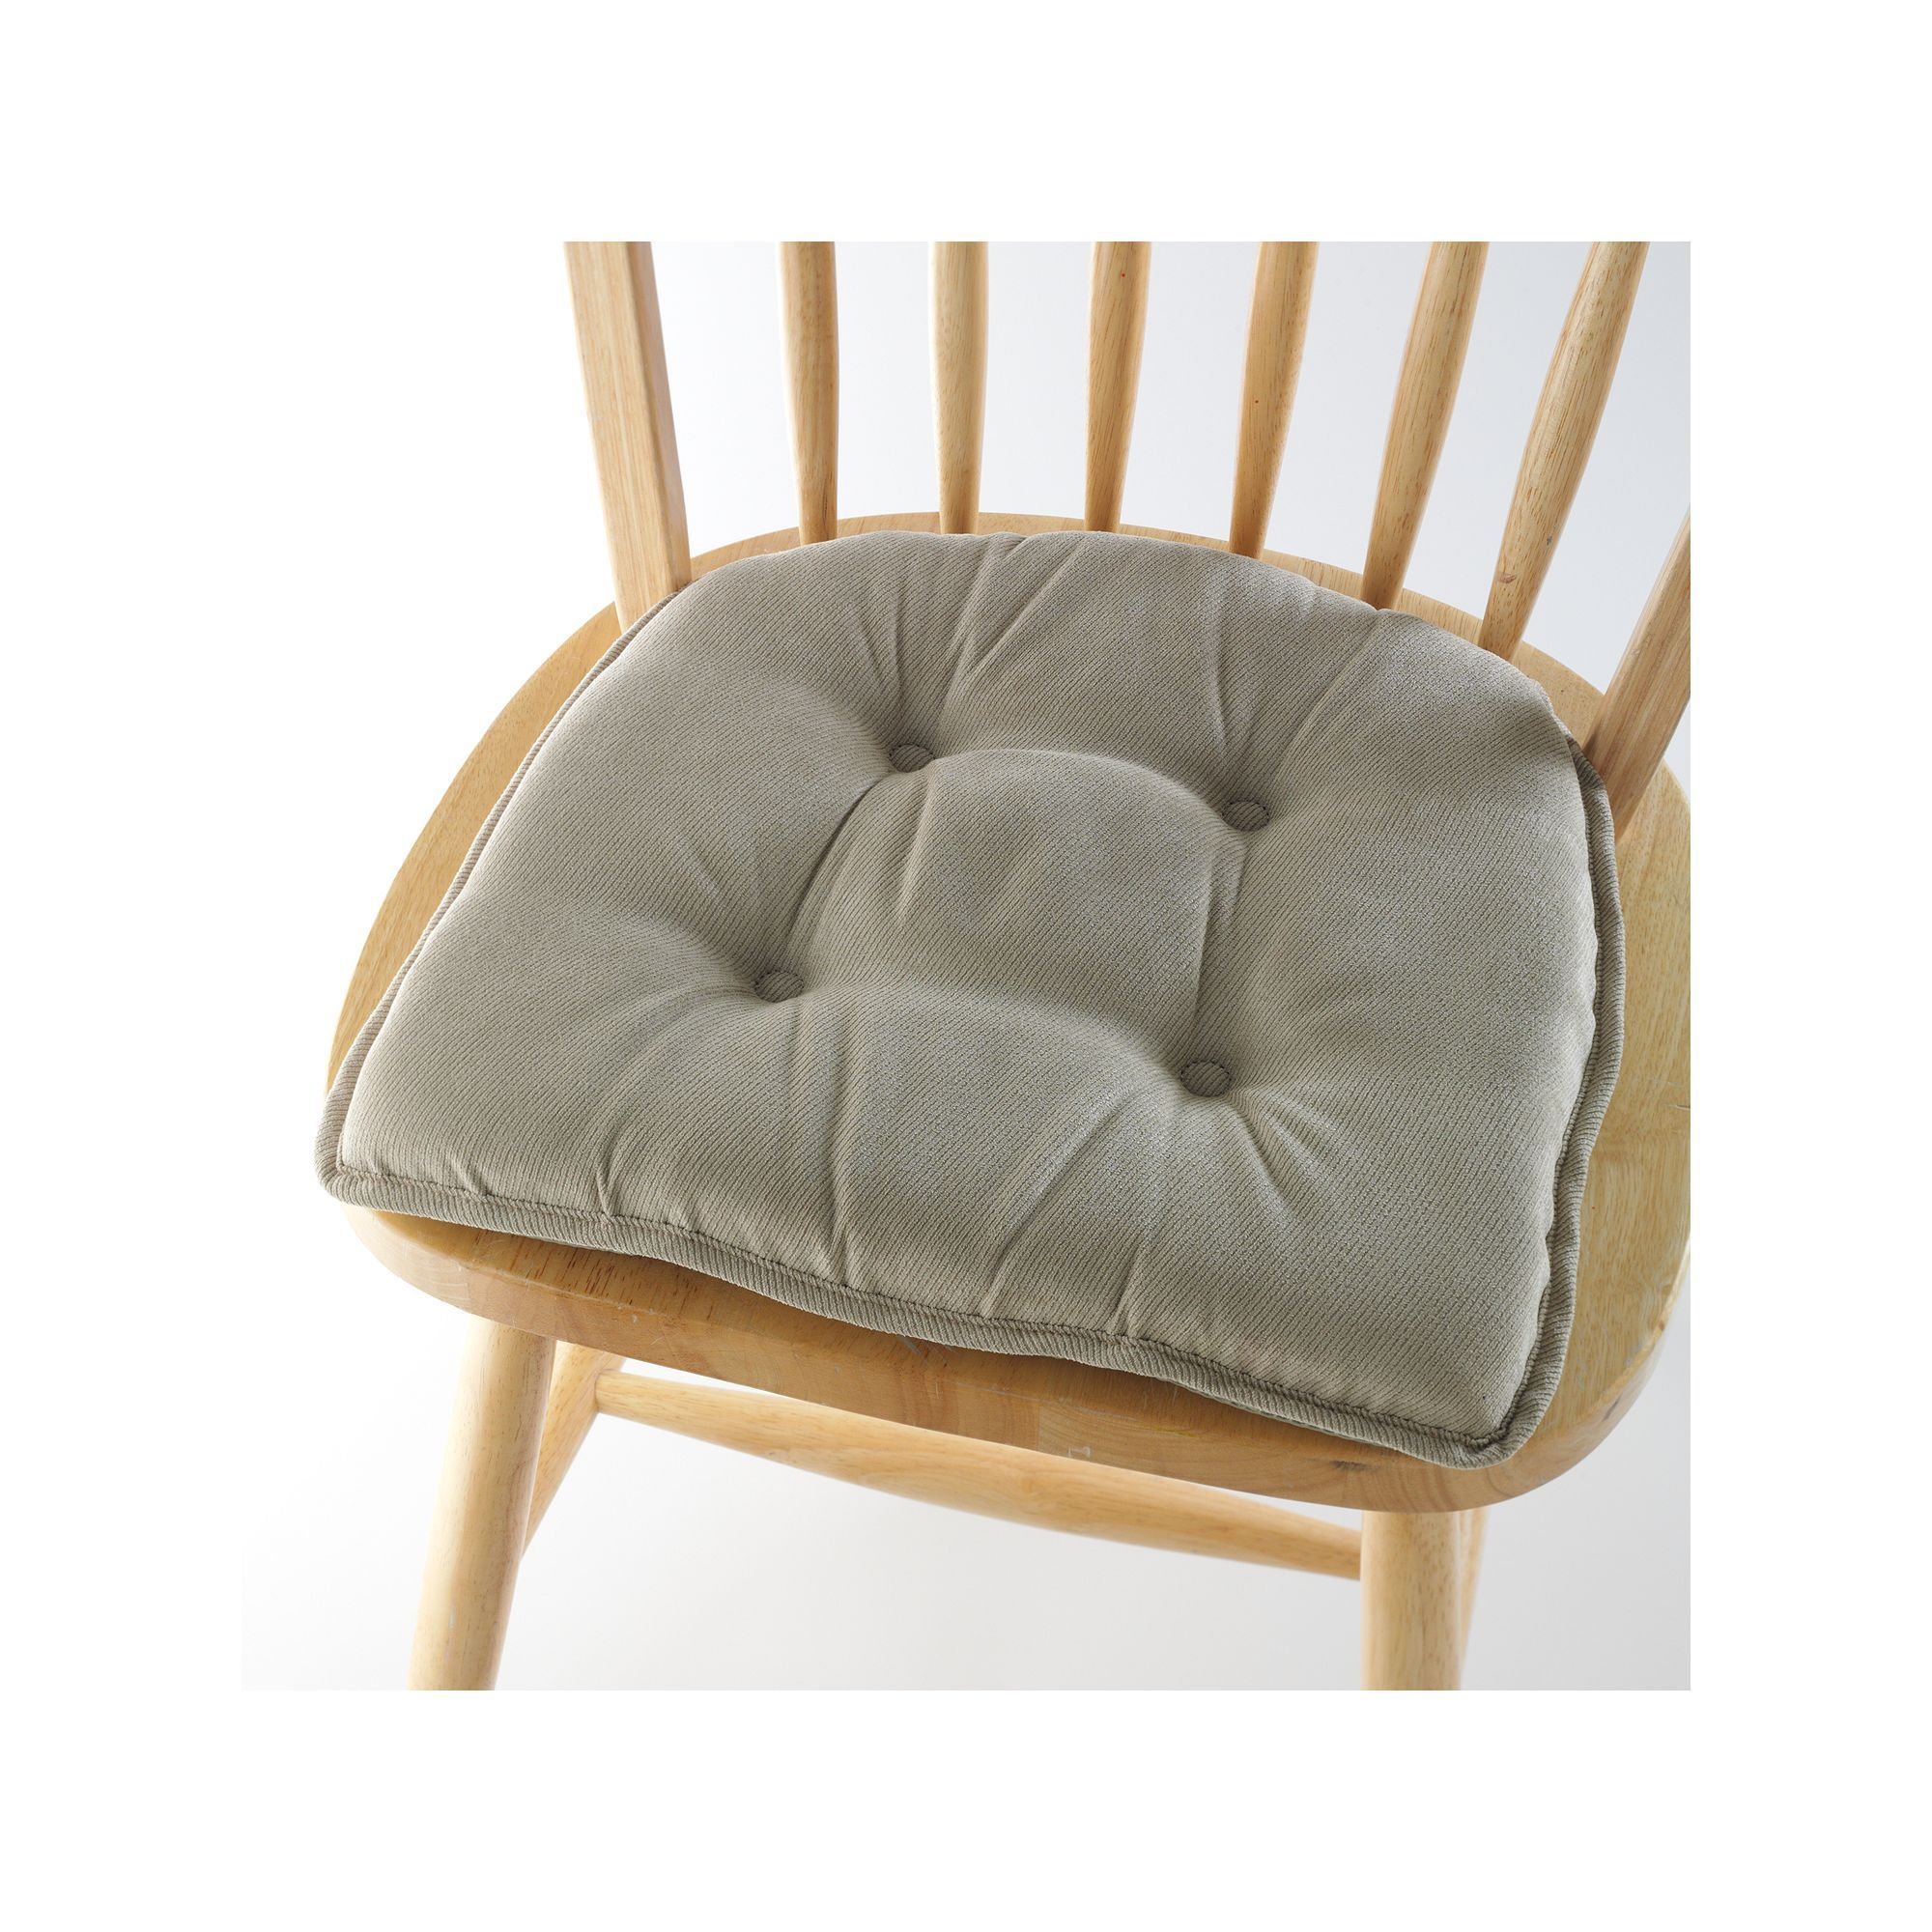 Fine Spill Guard Chair Pad Products Chair Chair Pads Porch Unemploymentrelief Wooden Chair Designs For Living Room Unemploymentrelieforg